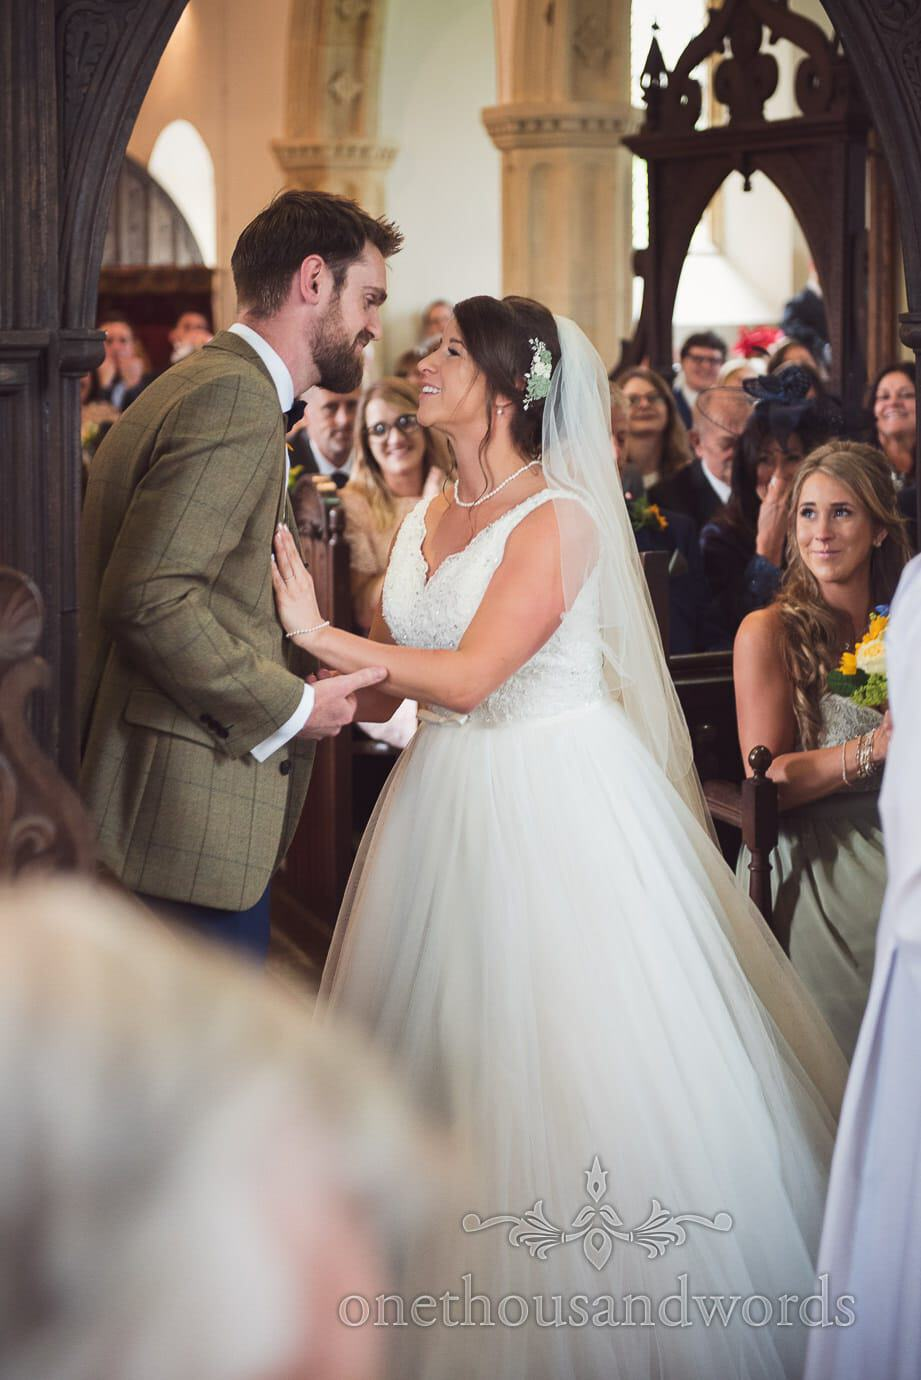 Wedding guests watch Bride and groom embrace during church wedding ceremony